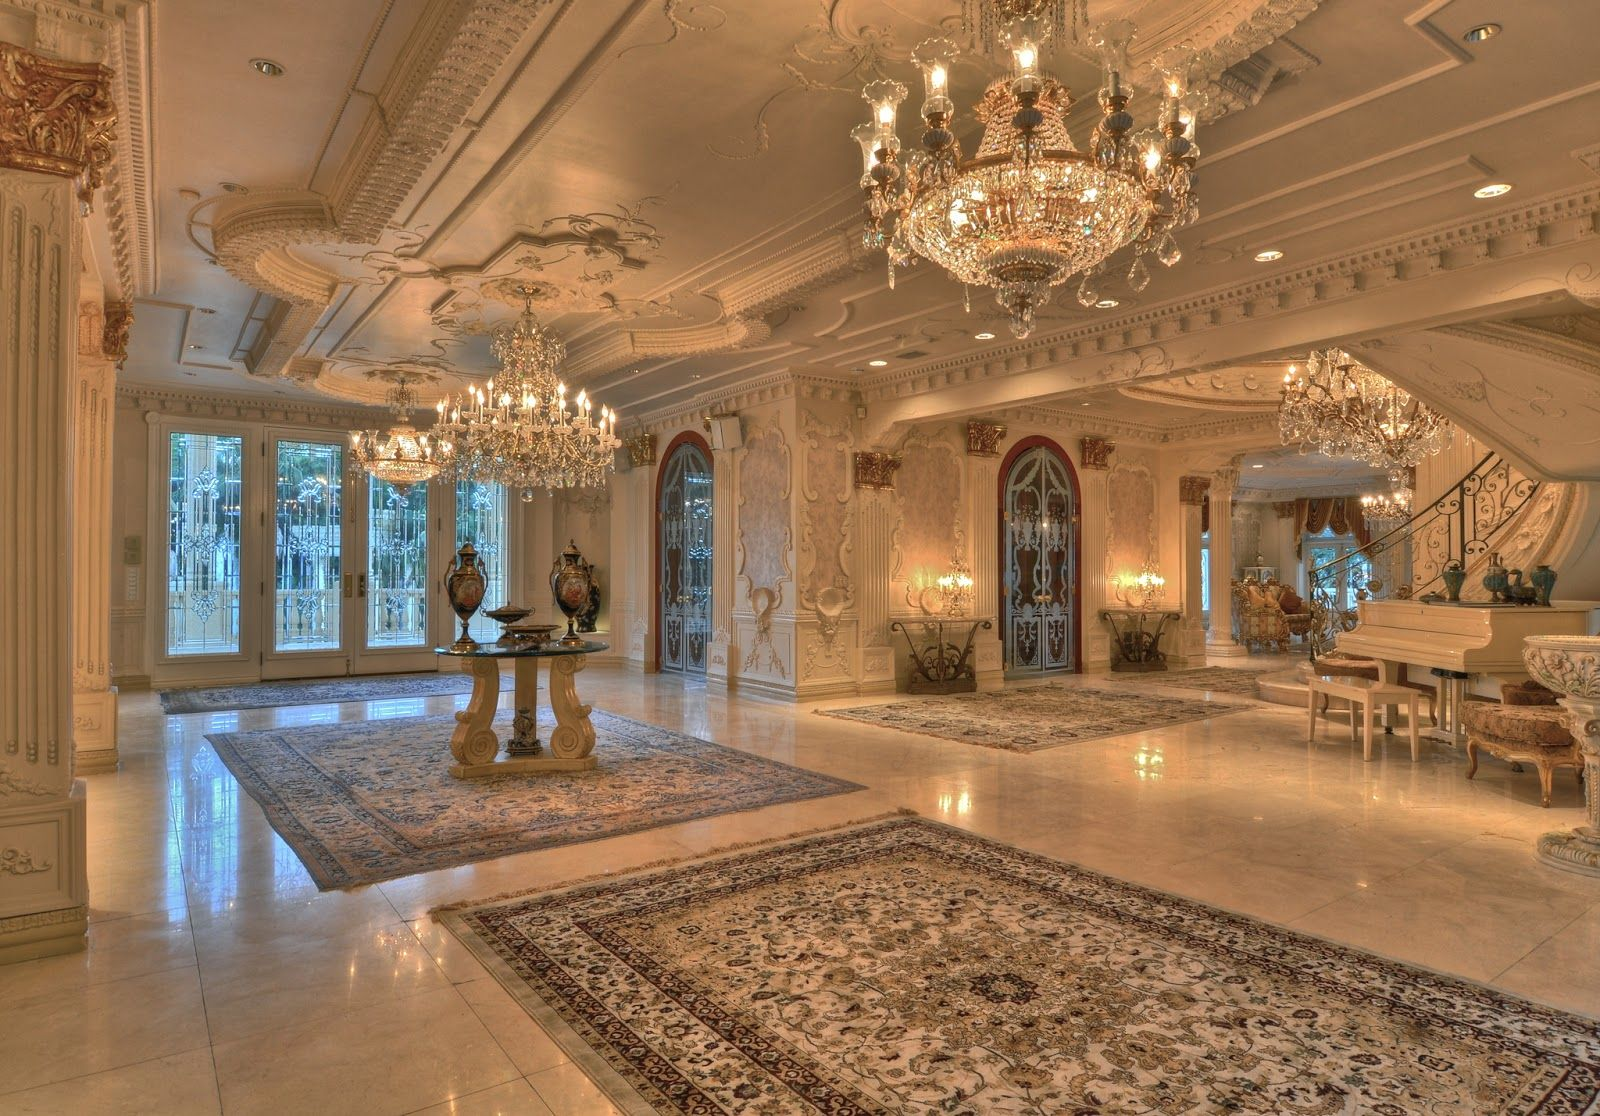 Chateau D Or Bel Air California Mansions Bel Air Palace